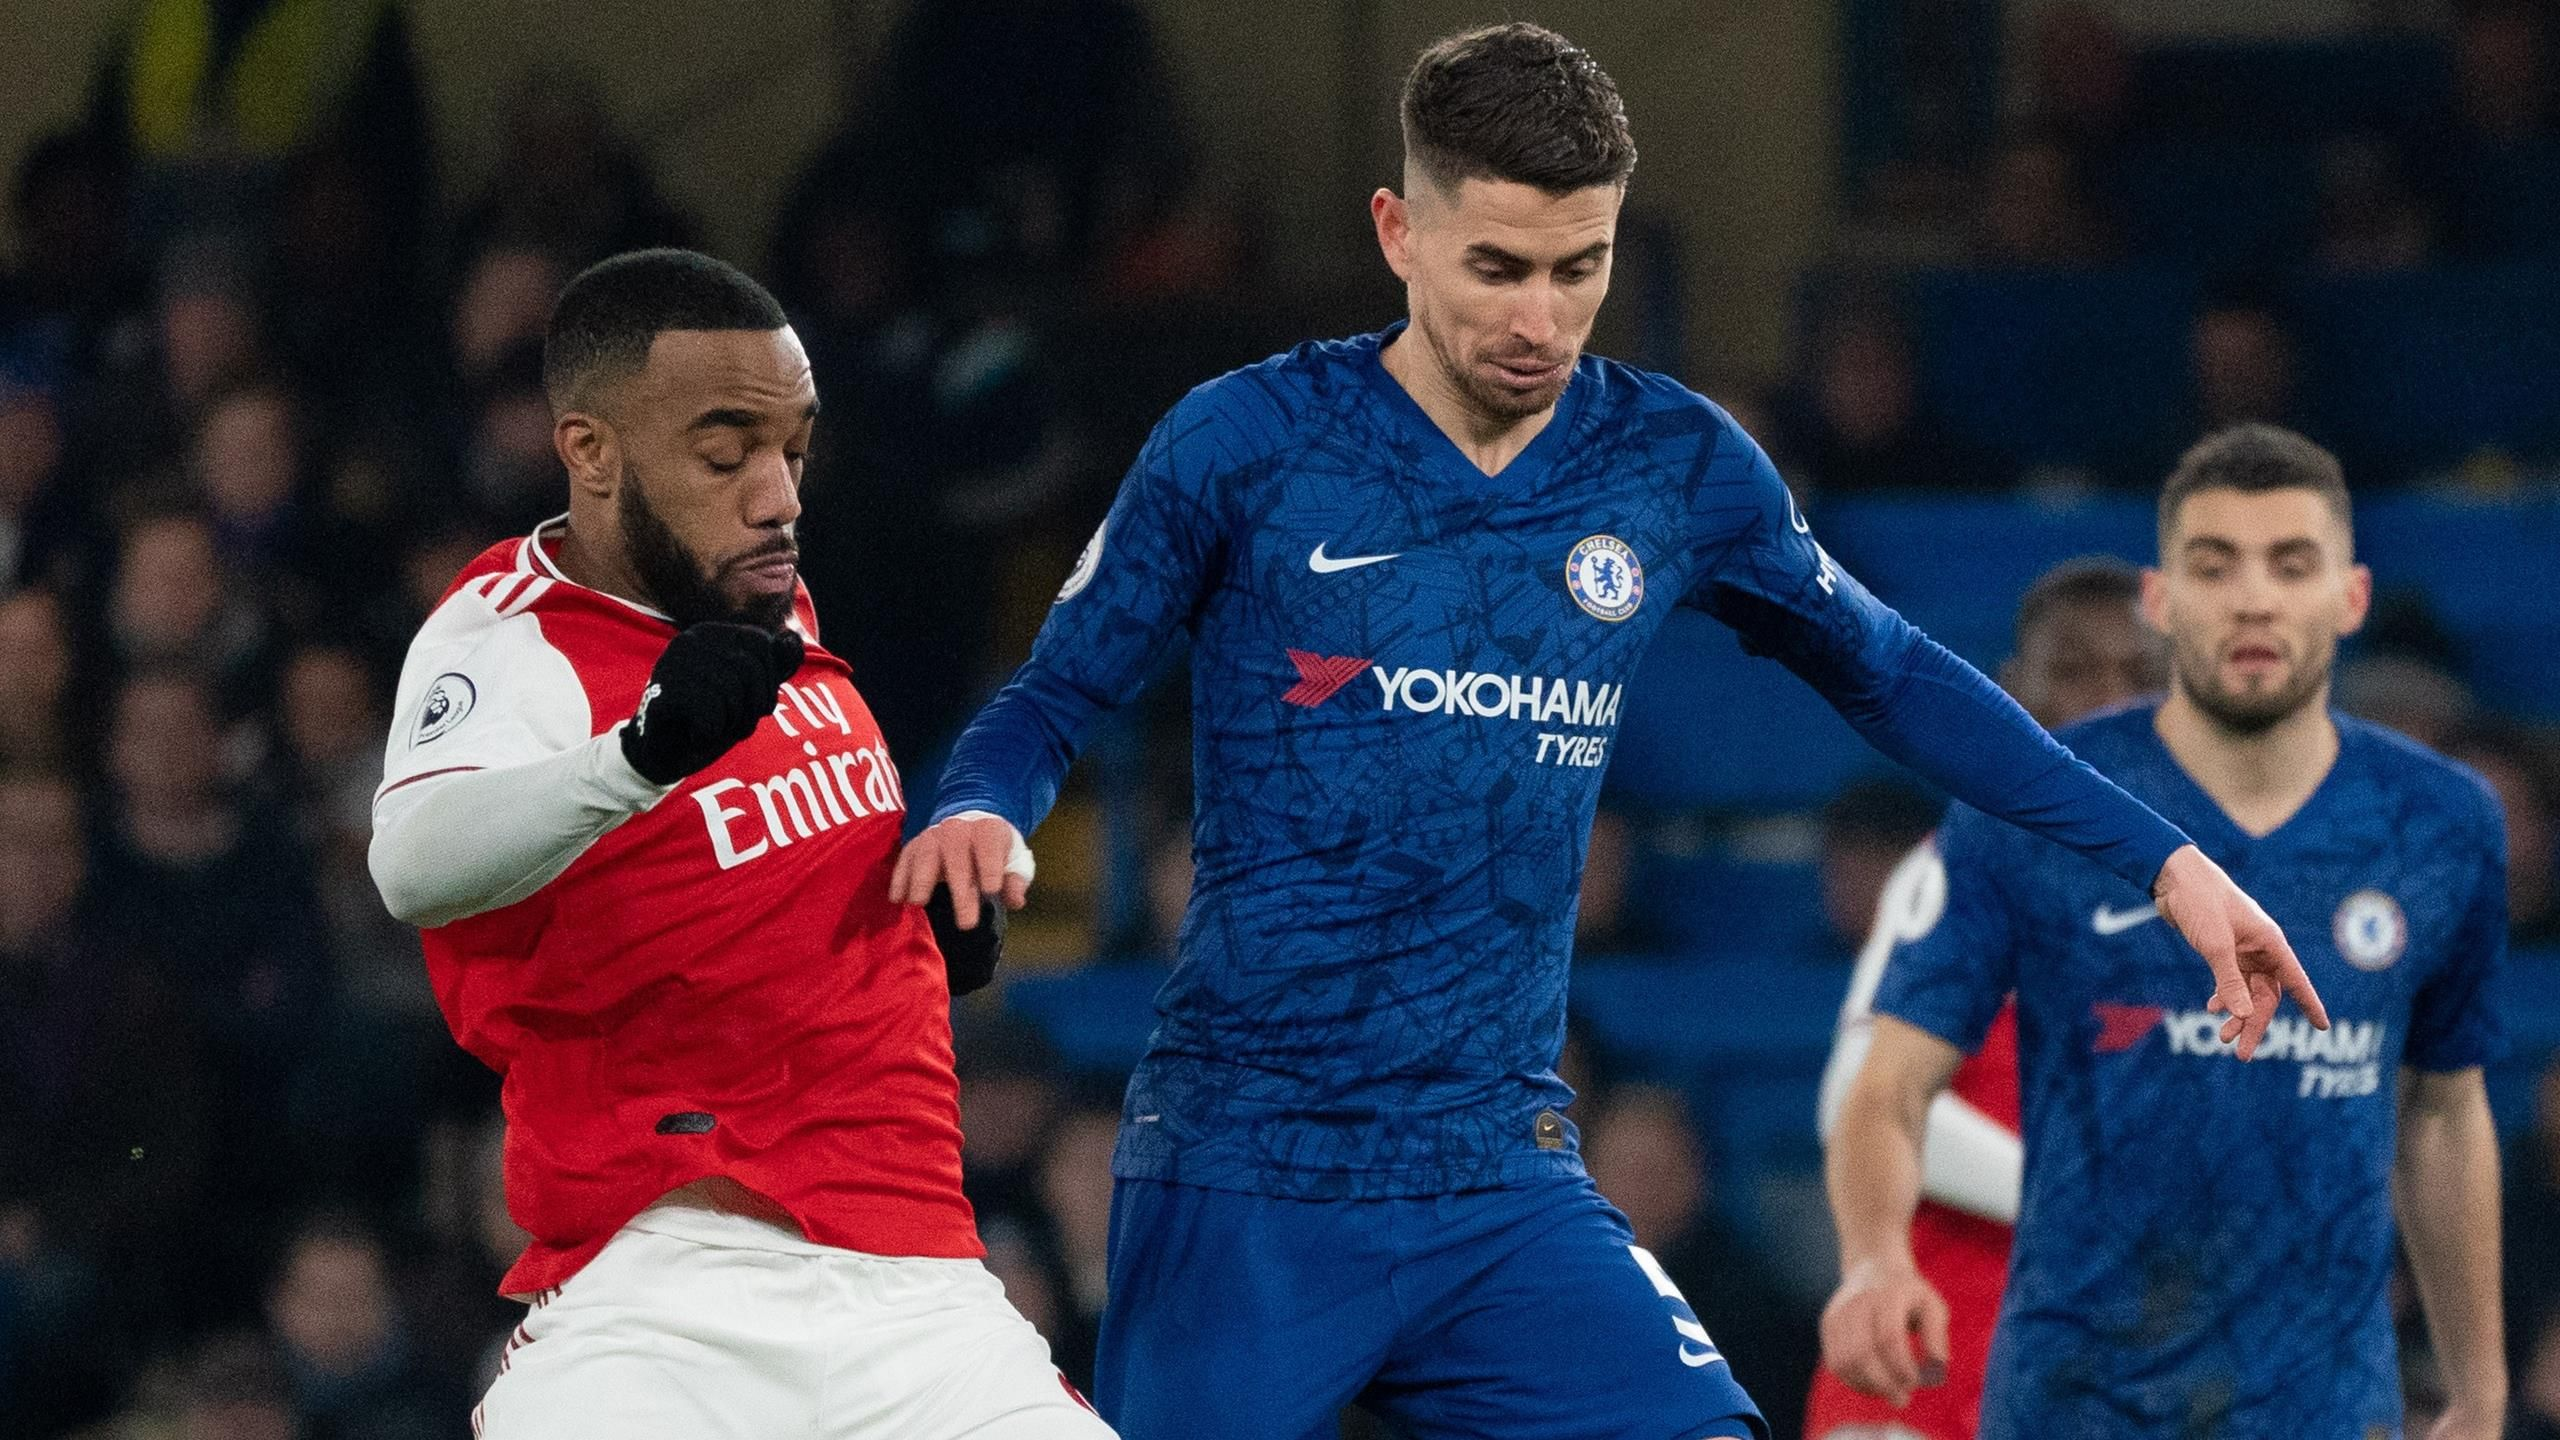 Arsenal Must Be Prepared For Another Demoralizing Defeat Against Chelsea -Ian Wright